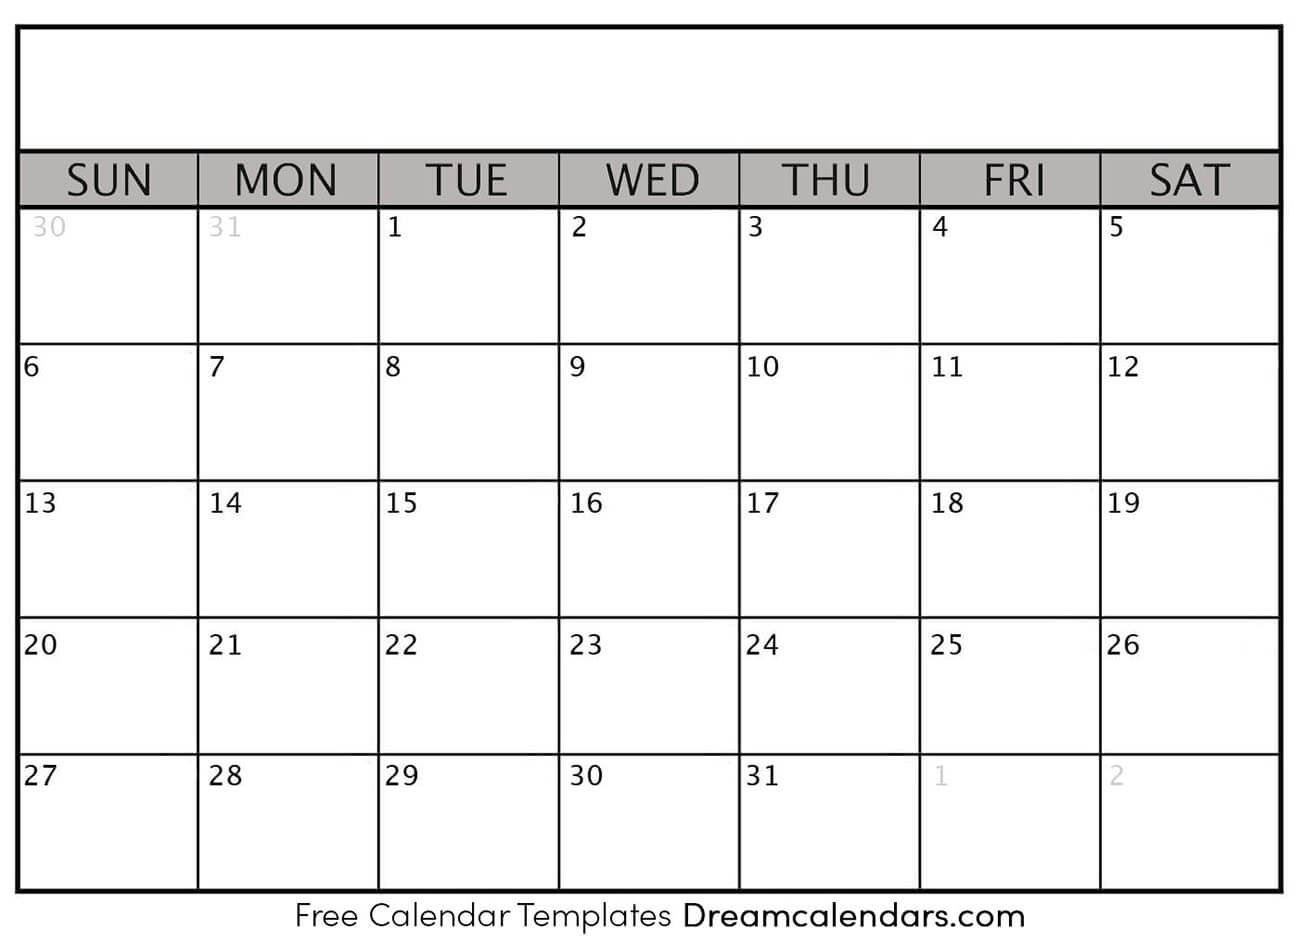 Dream Calendars - Make Your Calendar Template Blog Printable Blank Numbered List Up To 31